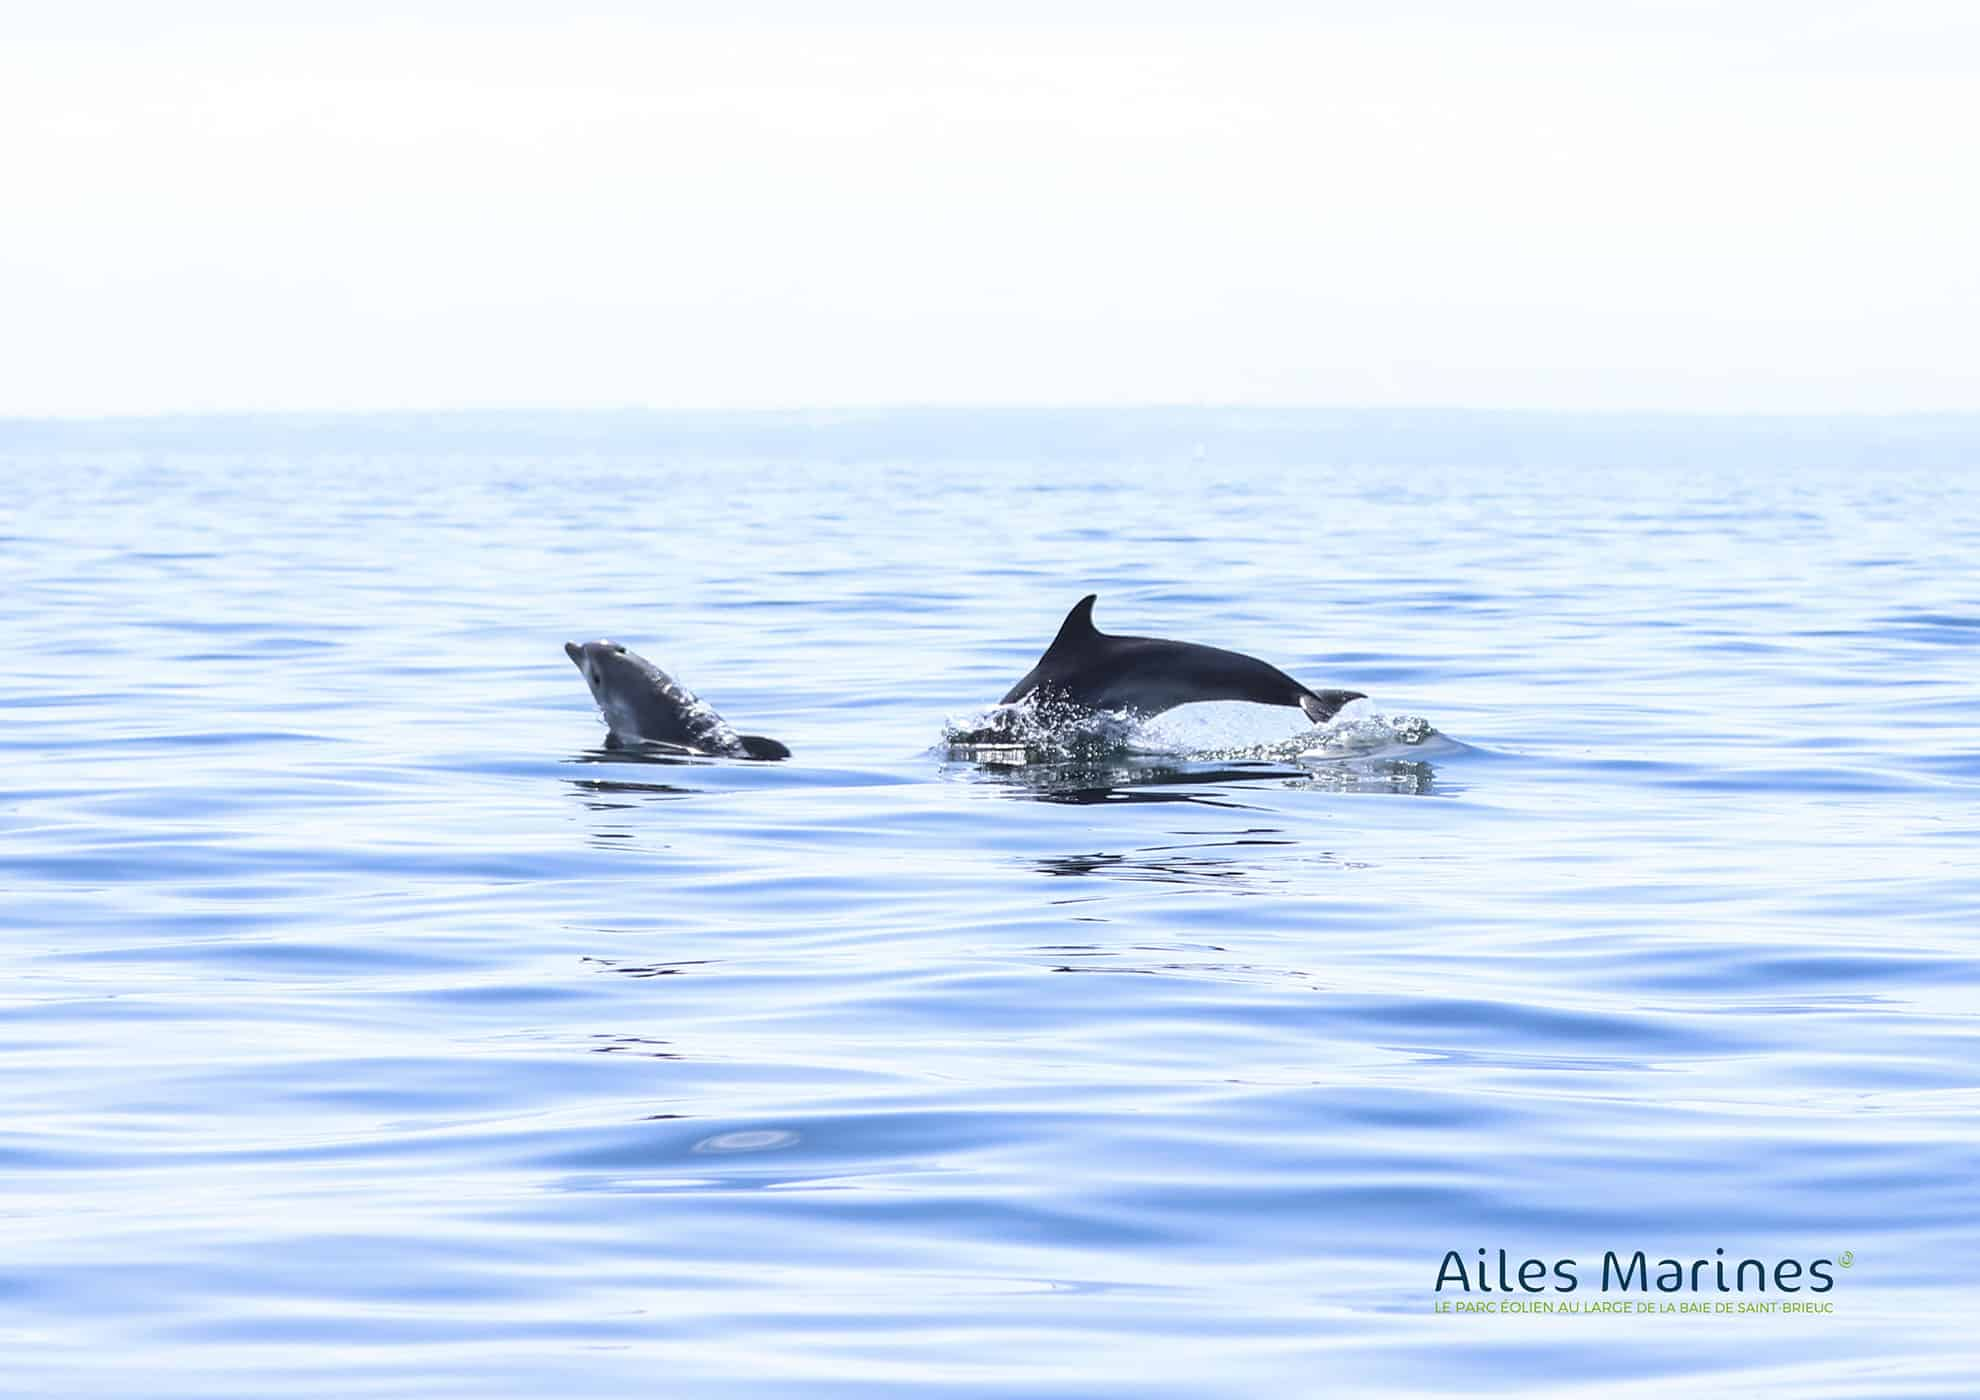 ailes-marines-sea-dolphins-jumping